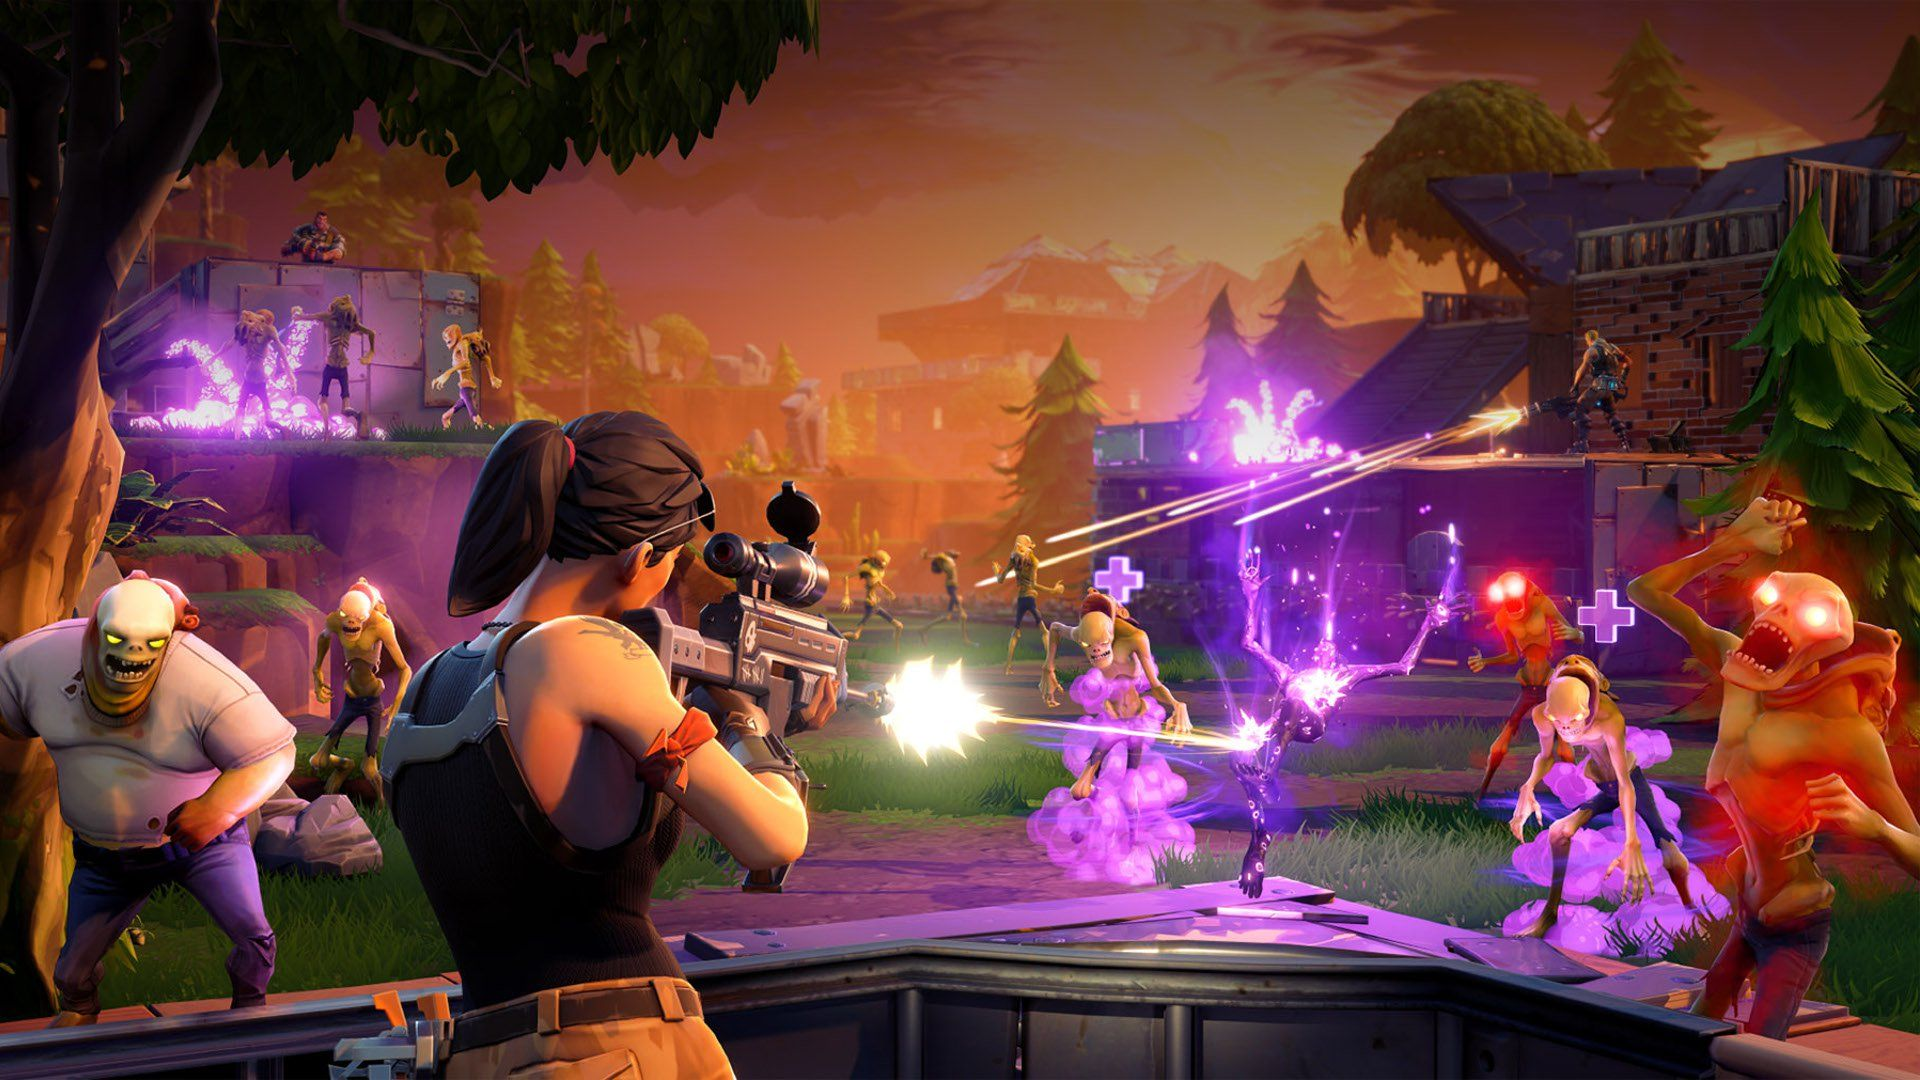 1920x1080 Fortnite Accidentally Enabled Crossplay Between Xbox One & PS 4